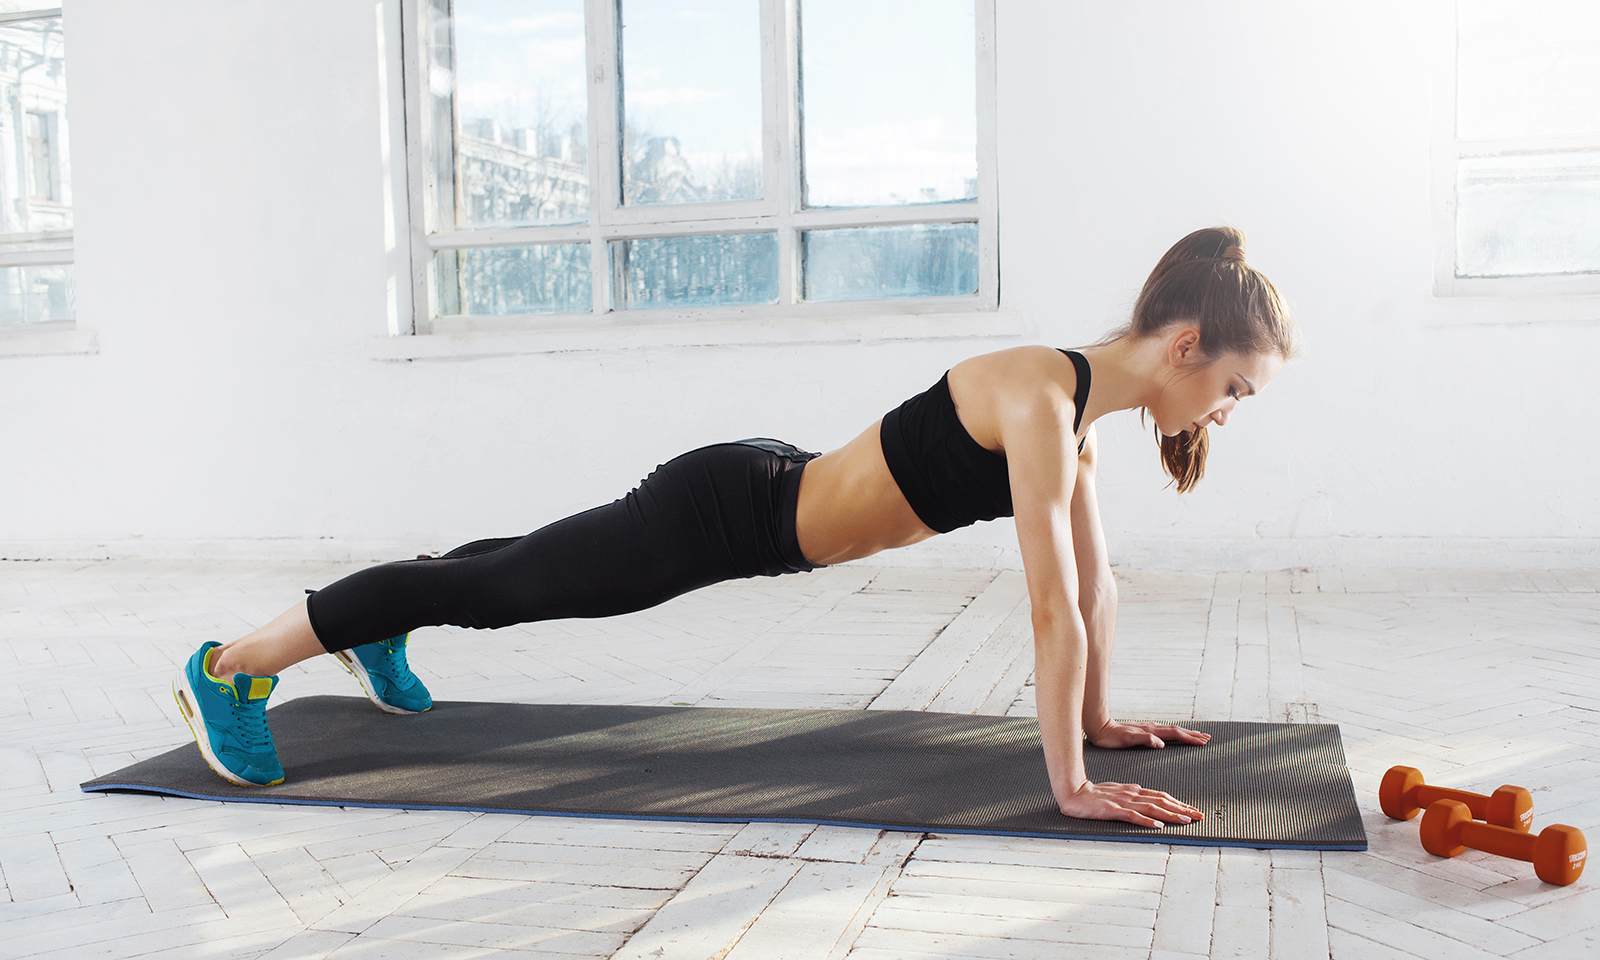 best-fitness-routines-woman-doing-plank-in-white-house-main-image